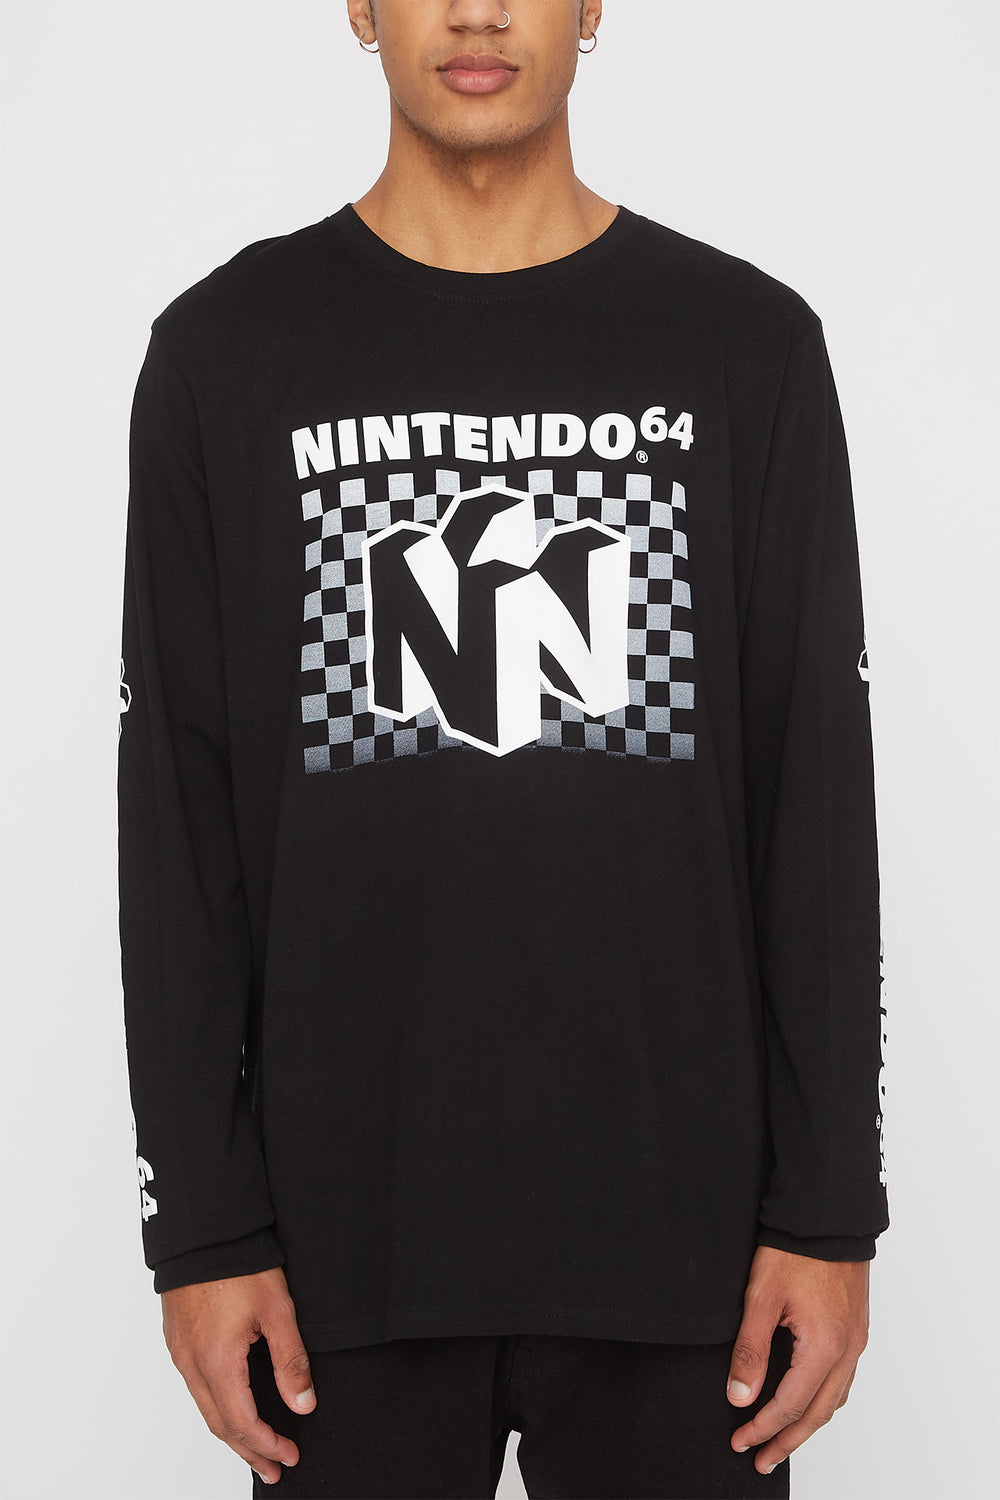 Mens Nintendo 64 Long Sleeve Black